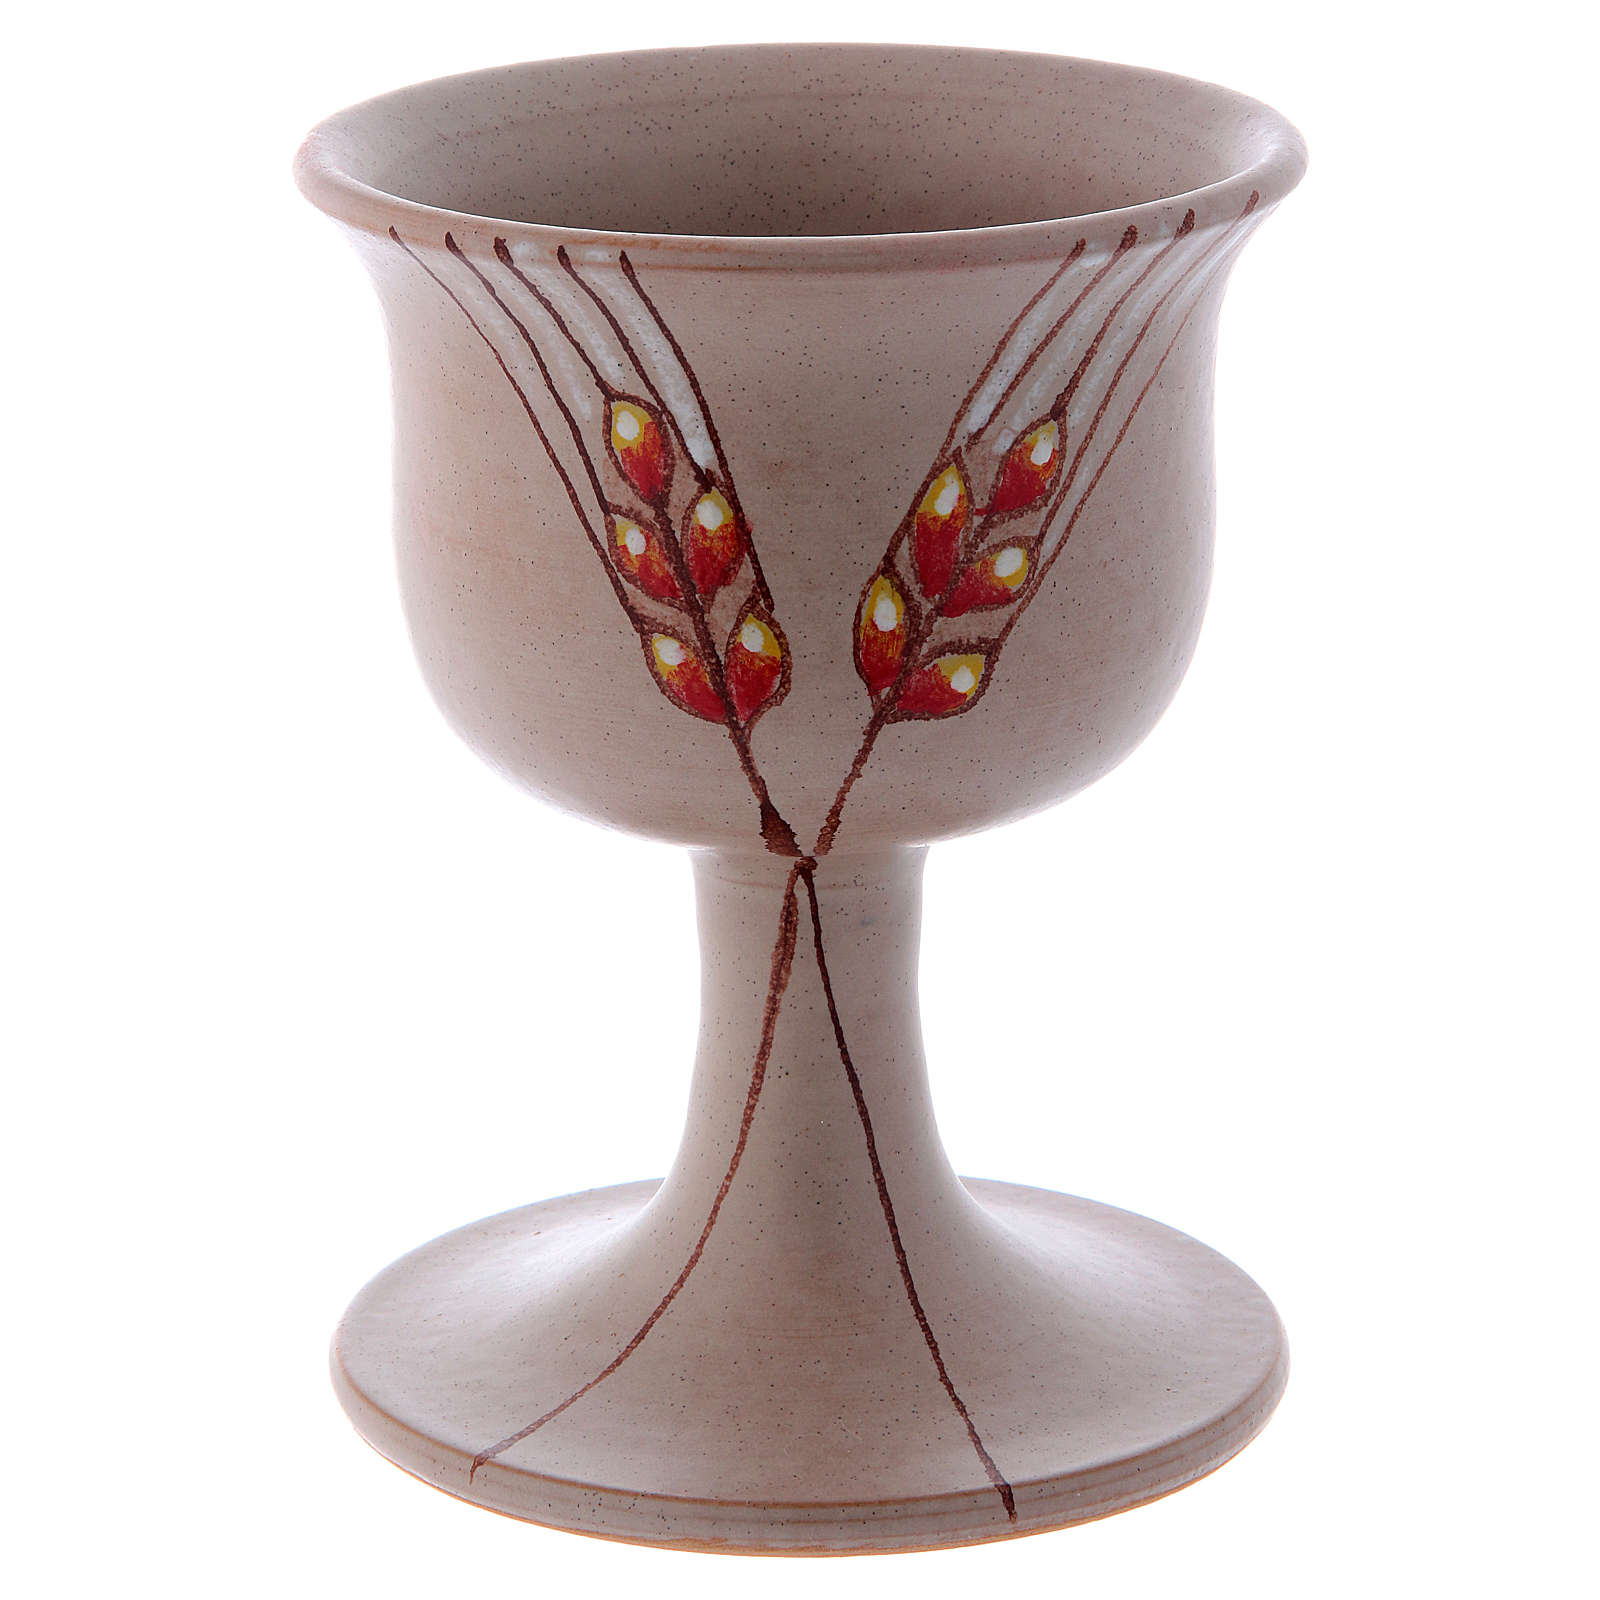 Ceramic chalice with spikes 4